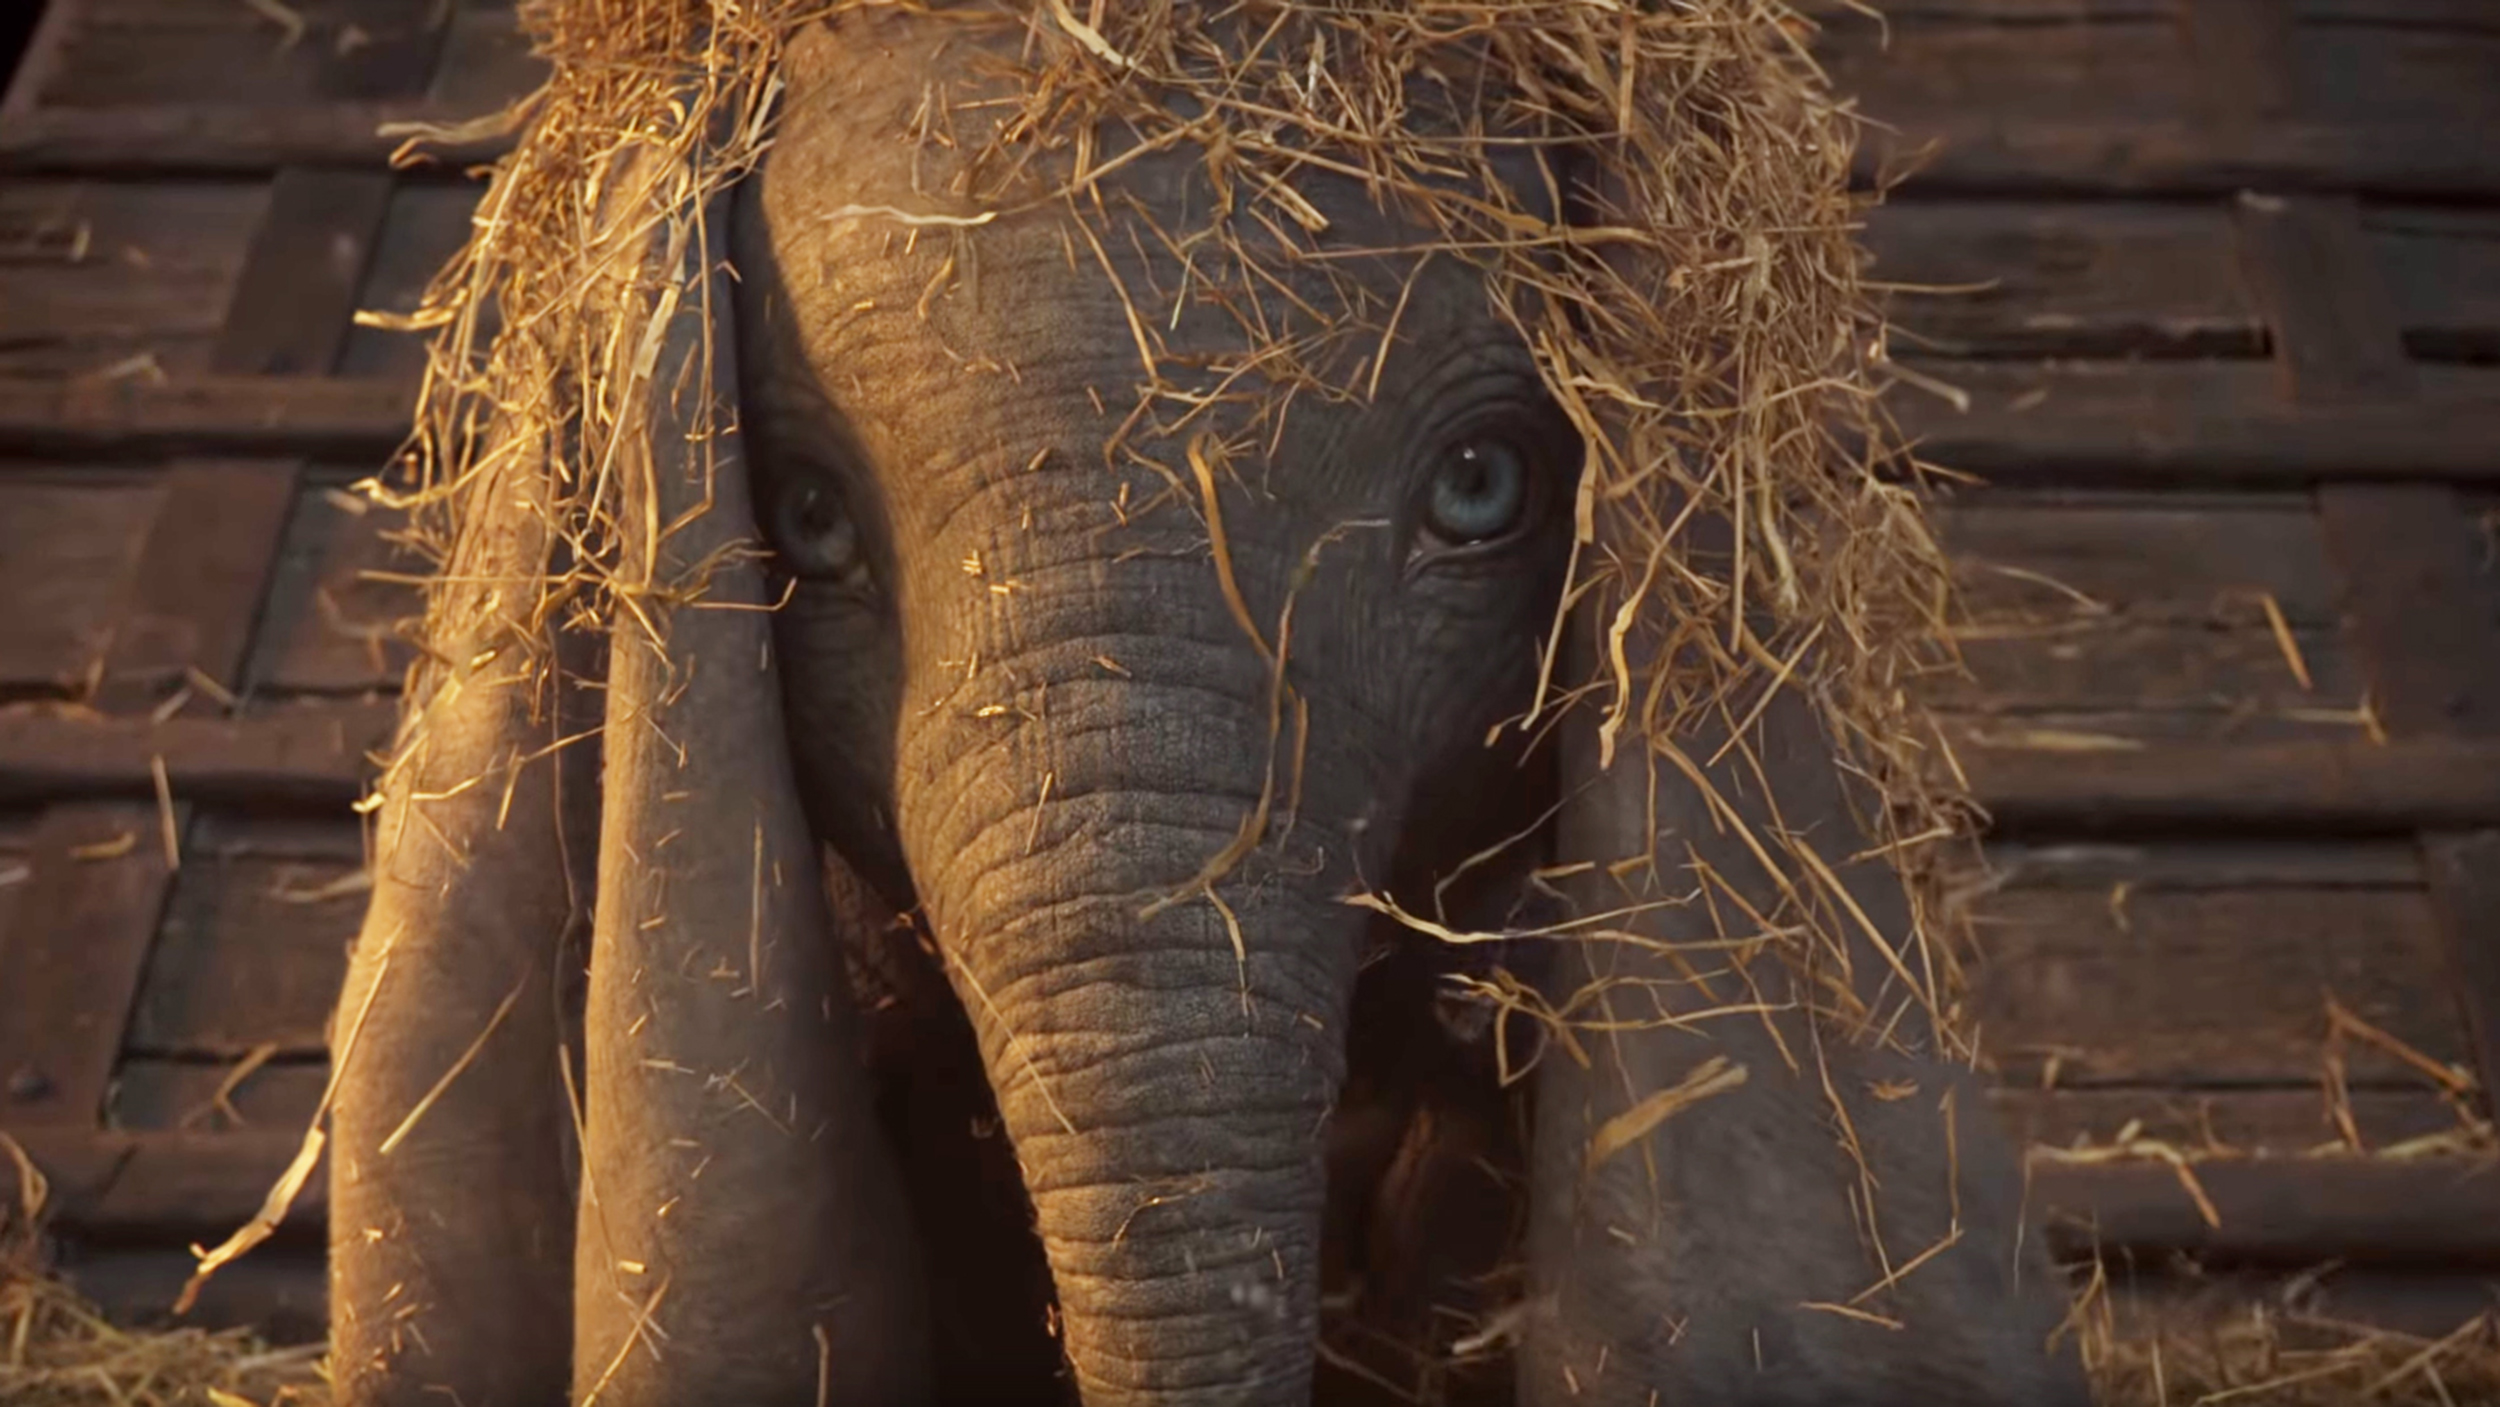 'Dumbo' trailer sends our hearts flying and our eyes crying